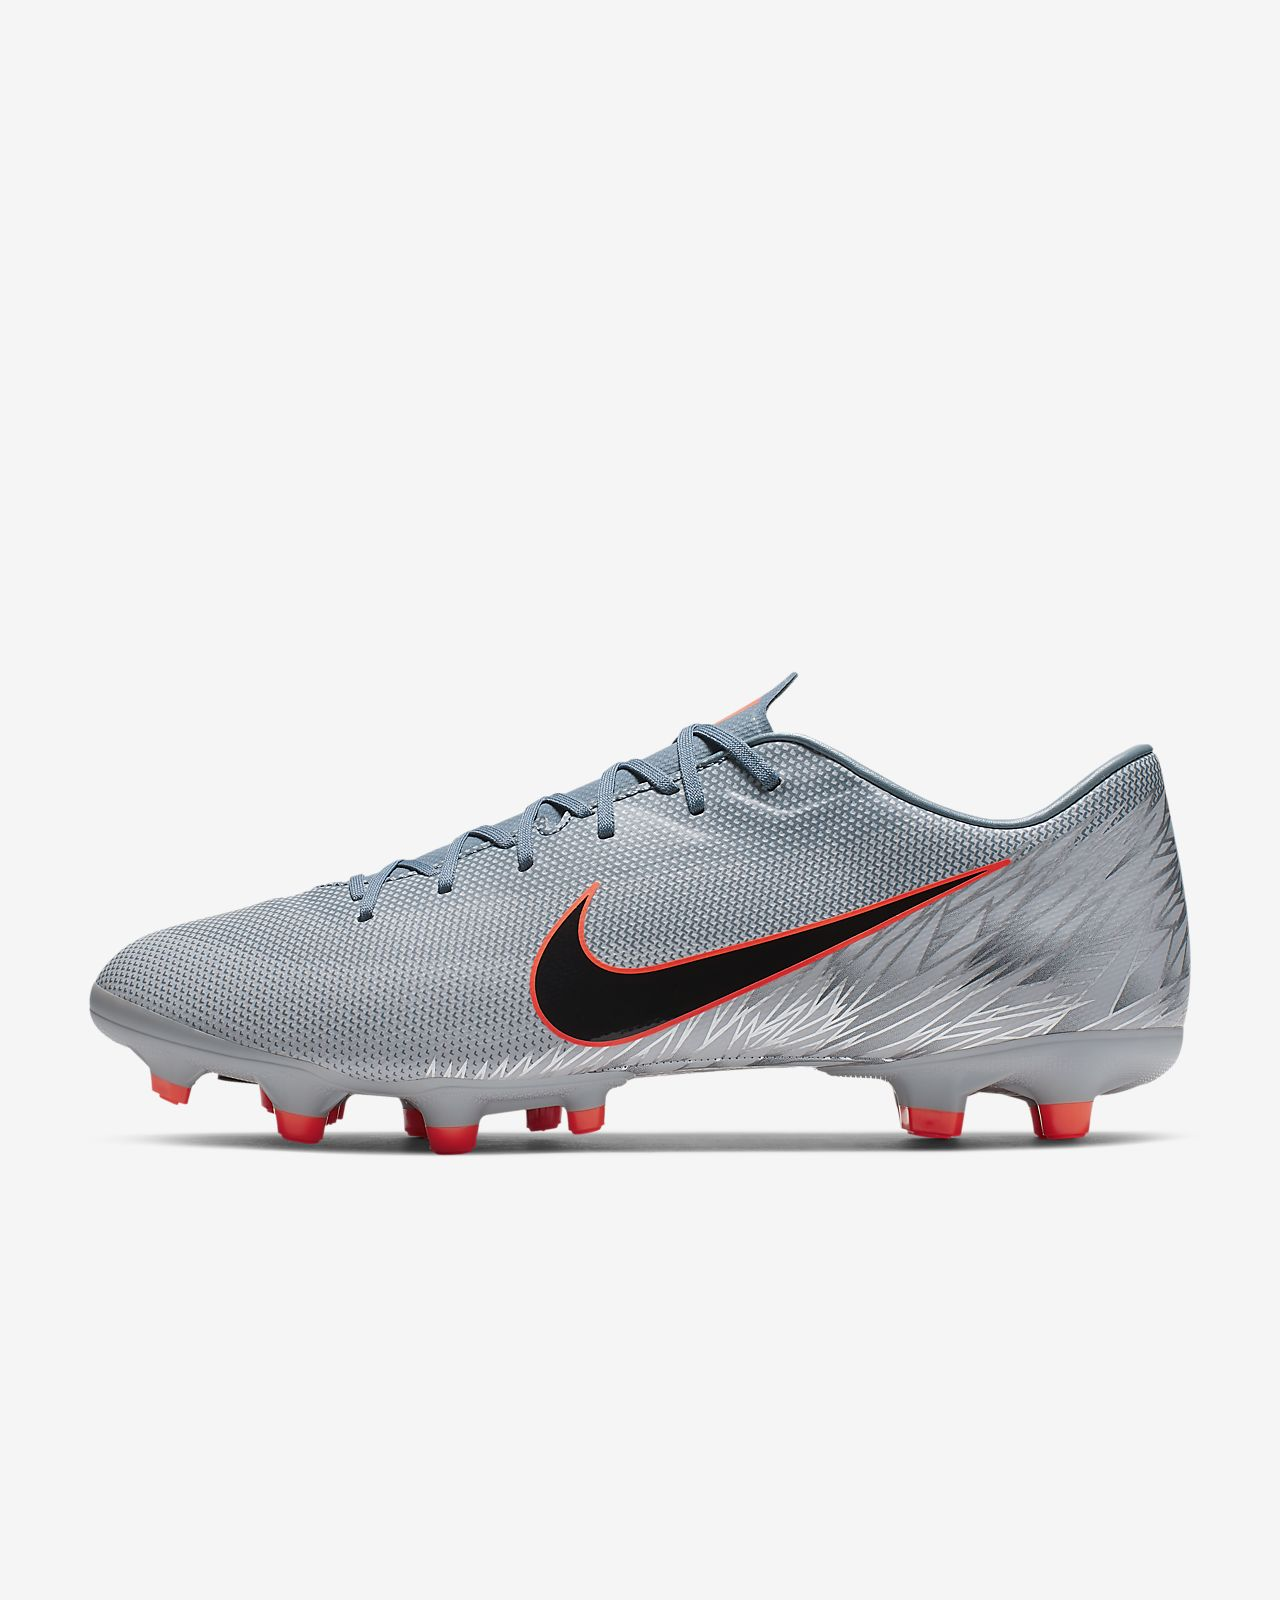 best website 998df 20b85 ... Chaussure de football multi-terrains à crampons Nike Vapor 12 Academy MG